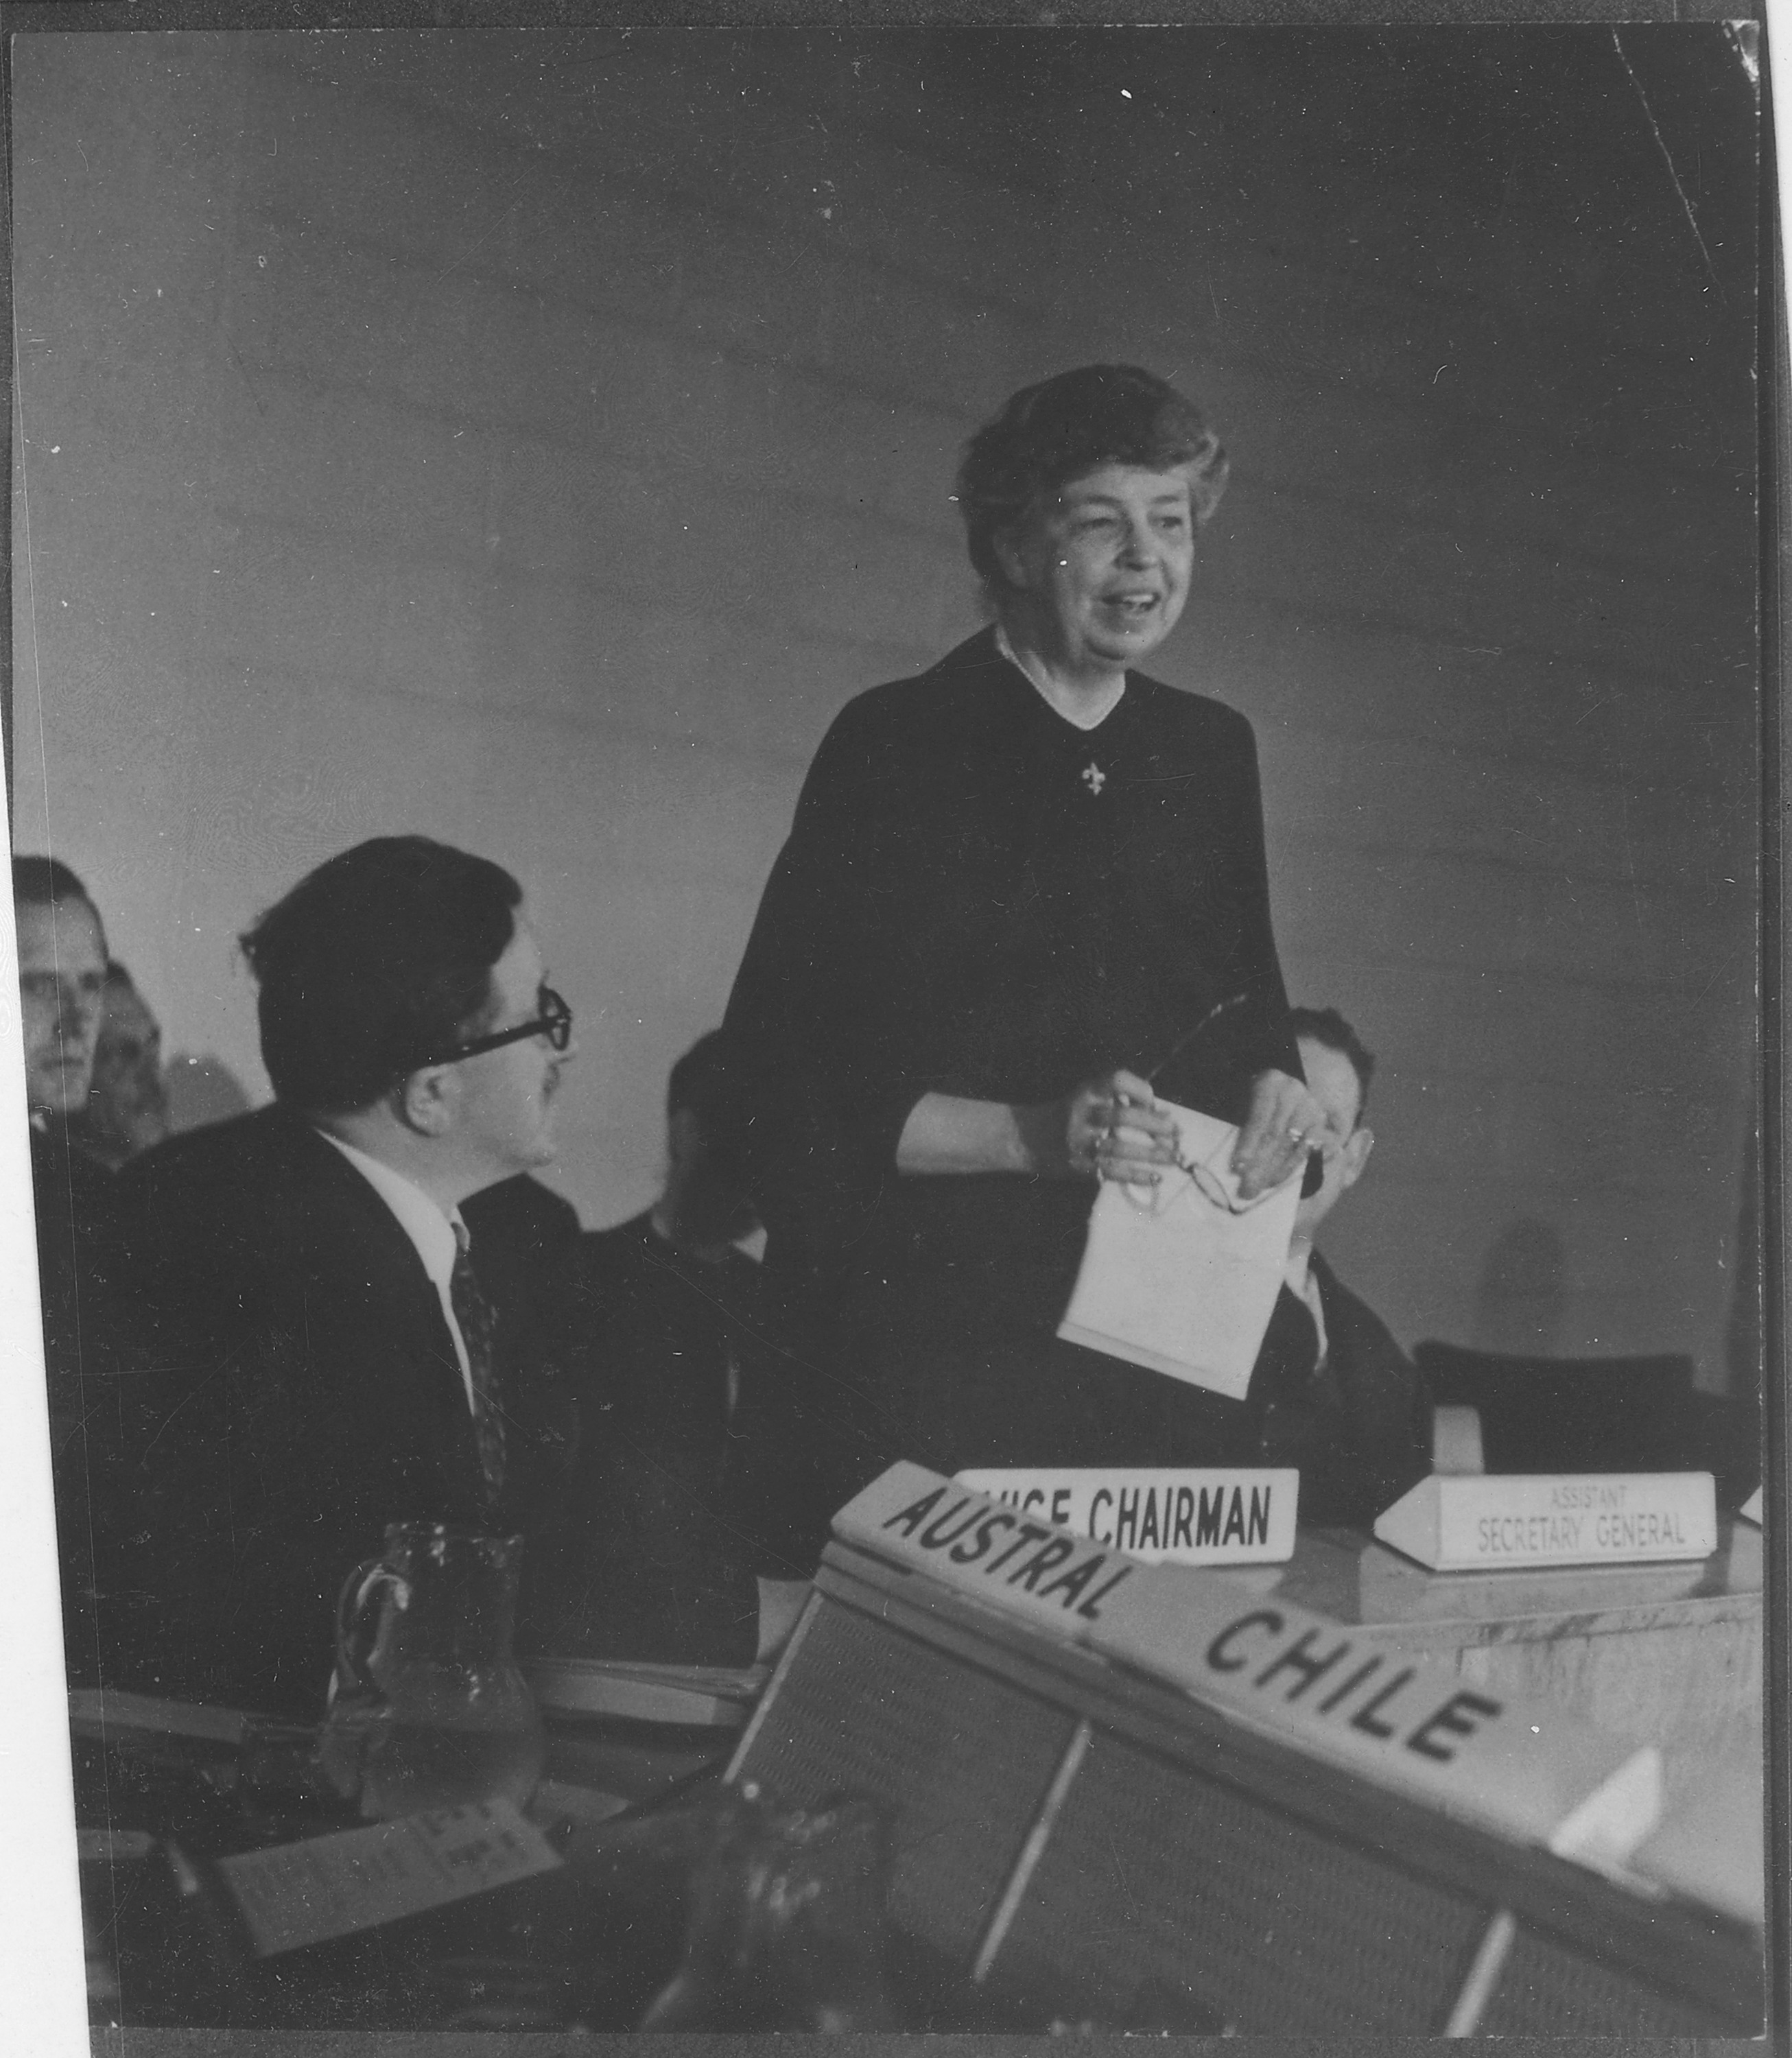 Eleanor Roosevelt at United Nations for Human Rights Commission meeting in Lake Success, New York in 1947